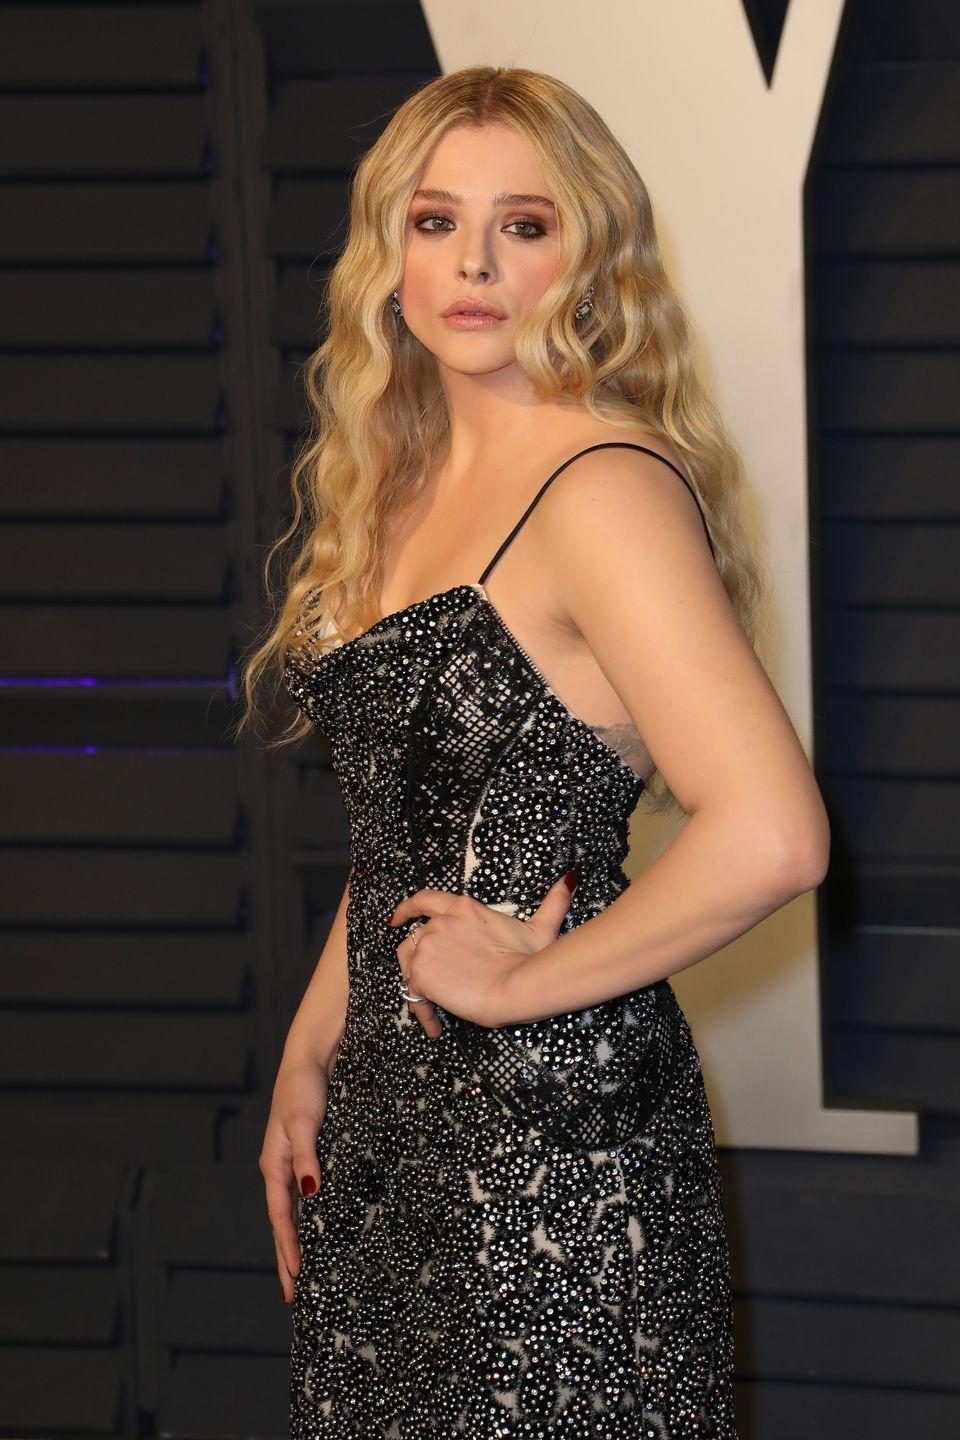 <p>Chloe started acting when she was just six, landing roles in hits like <em>The Amityville Horror </em>and <em>Desperate Housewives</em>. Since then she's starred in movies like <em>Kick-Ass</em> and <em>Neighbors 2 </em>and with a solid 16 years in the industry, it's no wonder people assume she's older.</p>